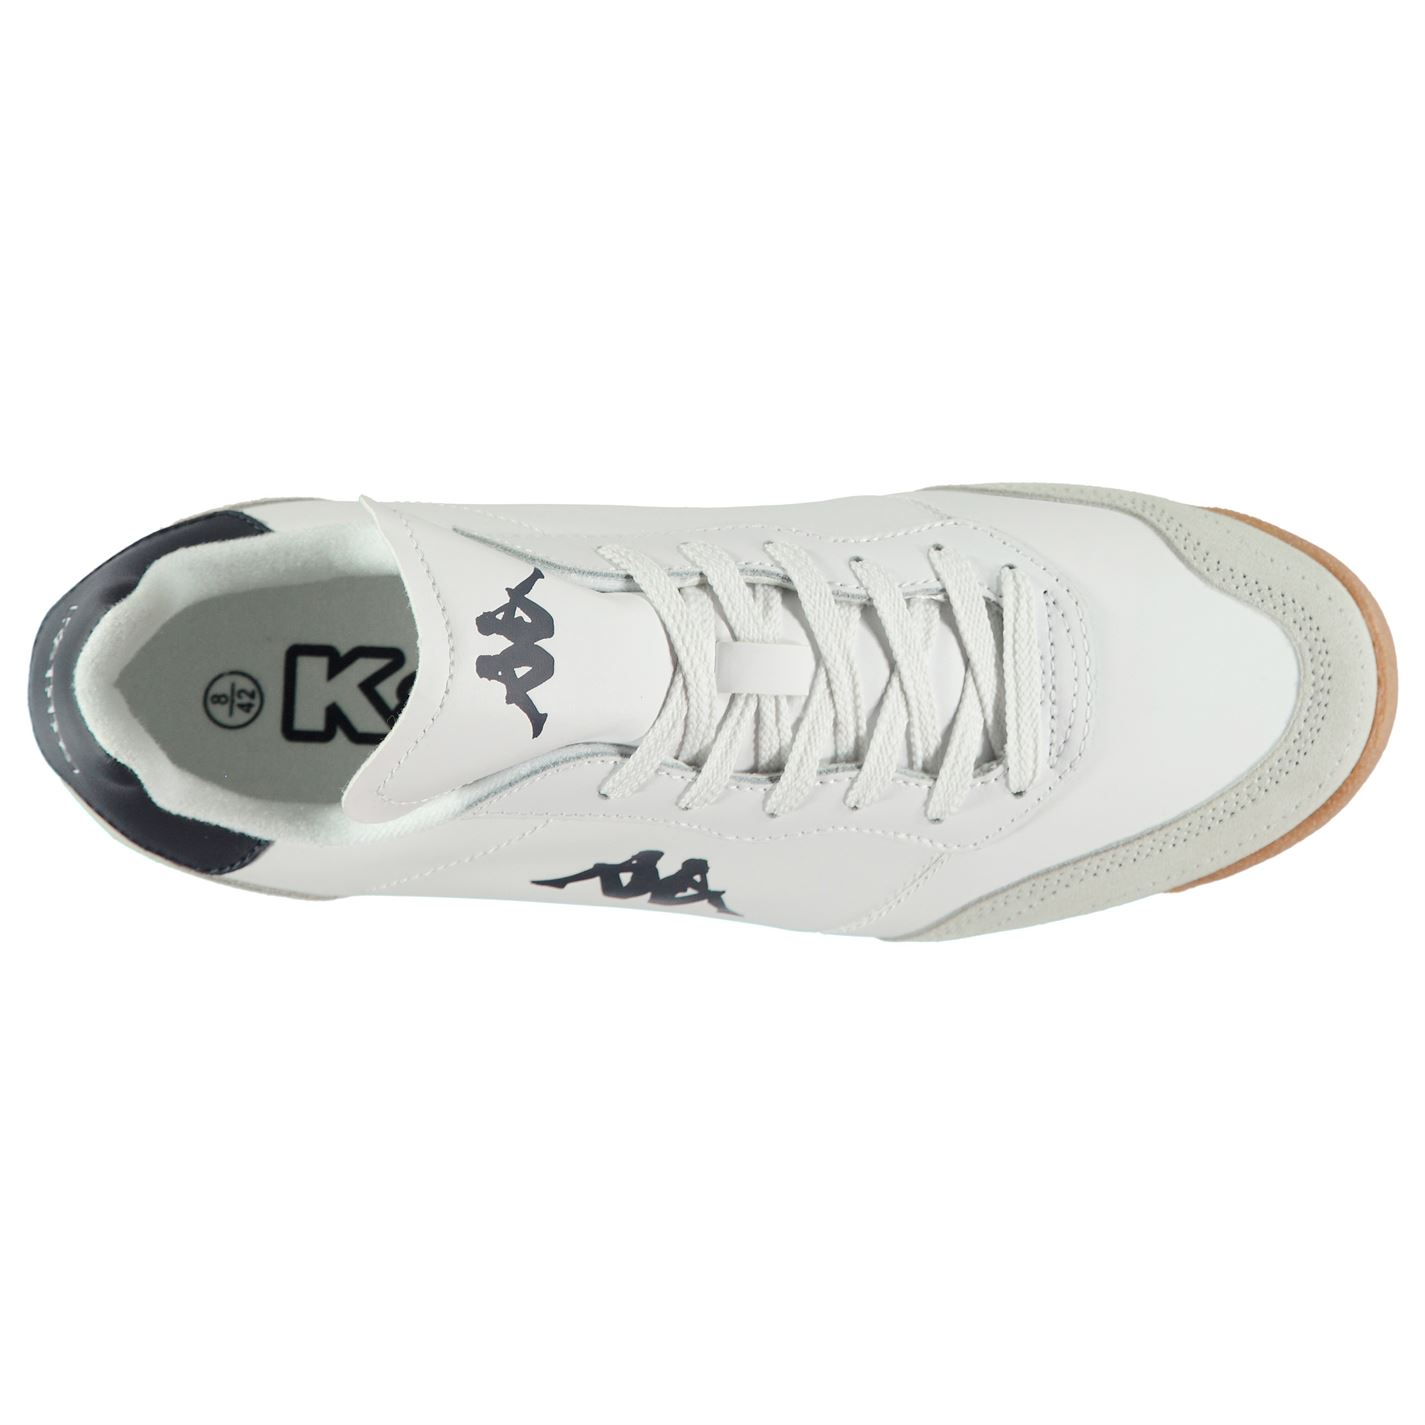 Kappa-Denser-DLX-Sneakers-Mens-Gents-Low-Laces-Fastened-Padded-Ankle-Collar miniatuur 5